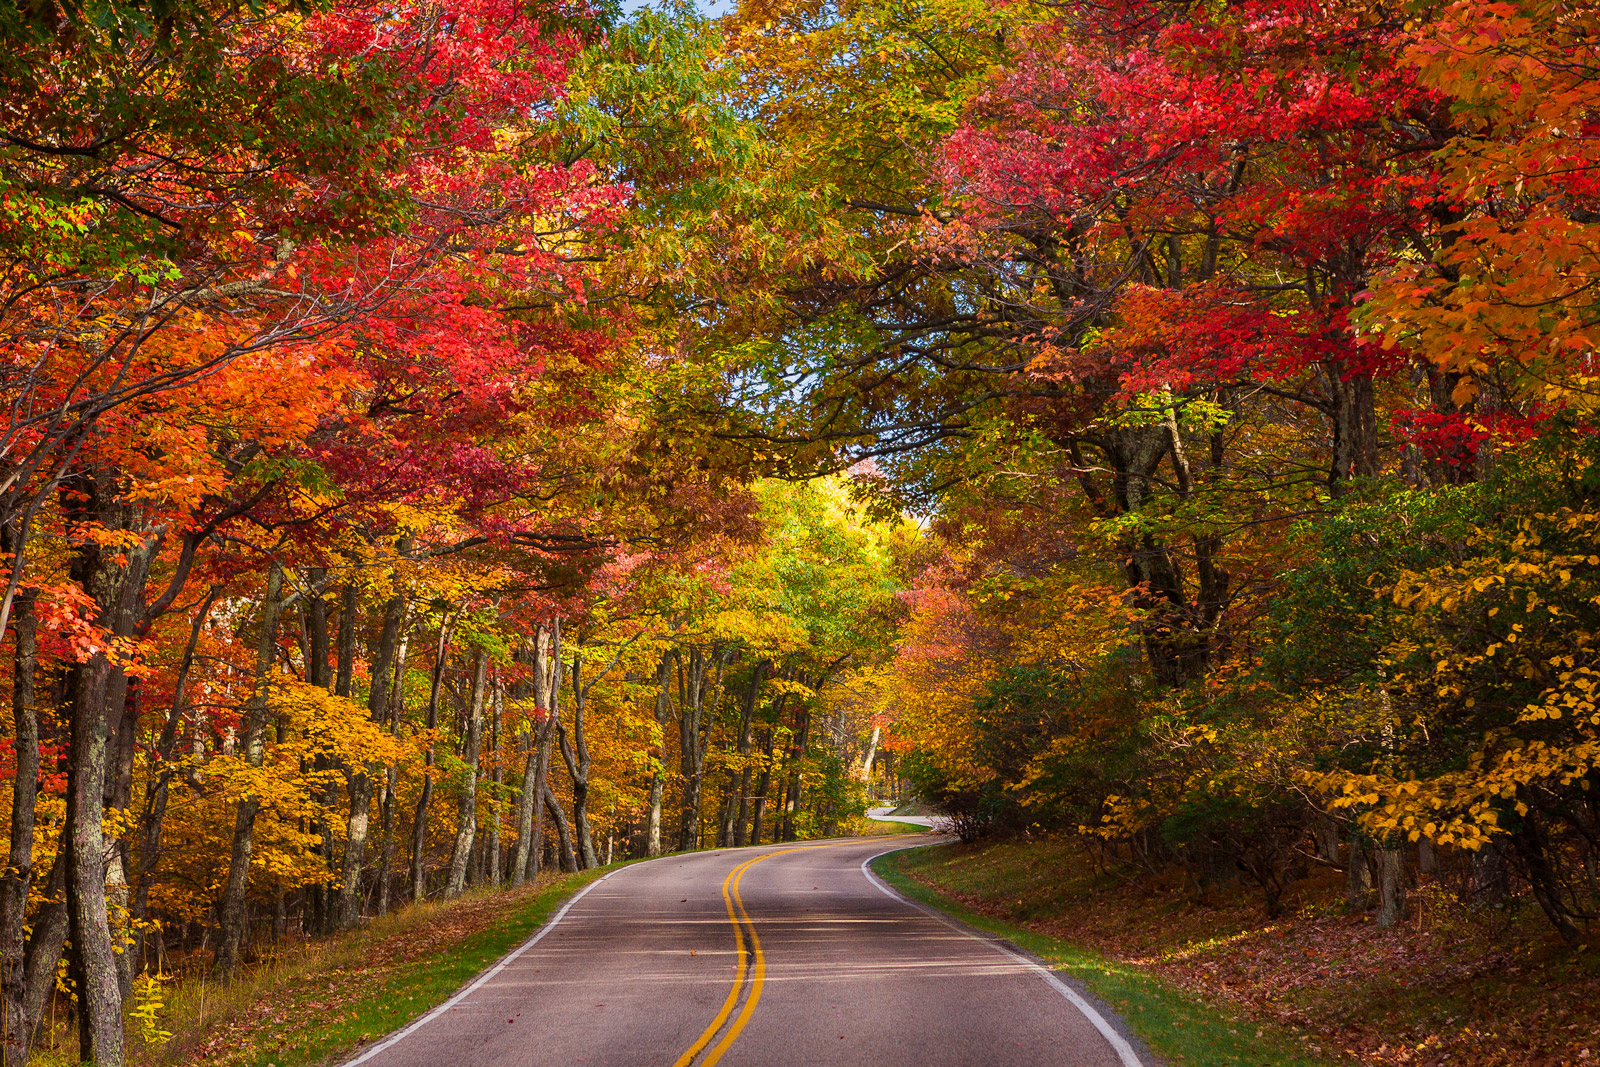 A Limited Edition, Fine Art photograph of a mountain road lined with trees displaying fall colors winding through Shenandoah...